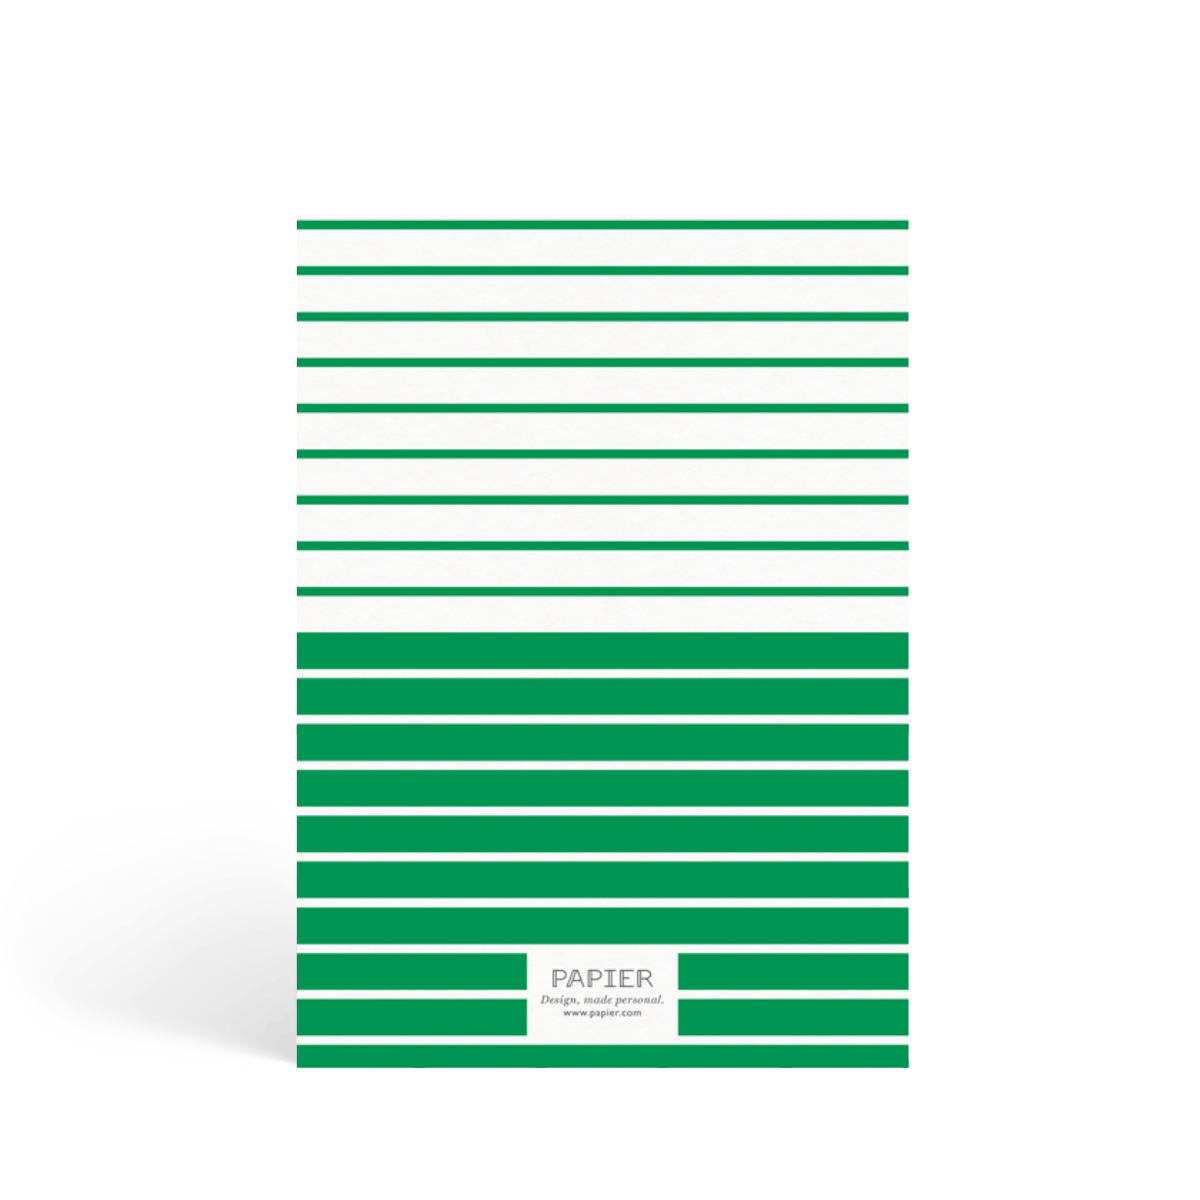 Https%3a%2f%2fwww.papier.com%2fproduct image%2f51006%2f5%2fdouble stripe 12488 back 1540288396.png?ixlib=rb 1.1